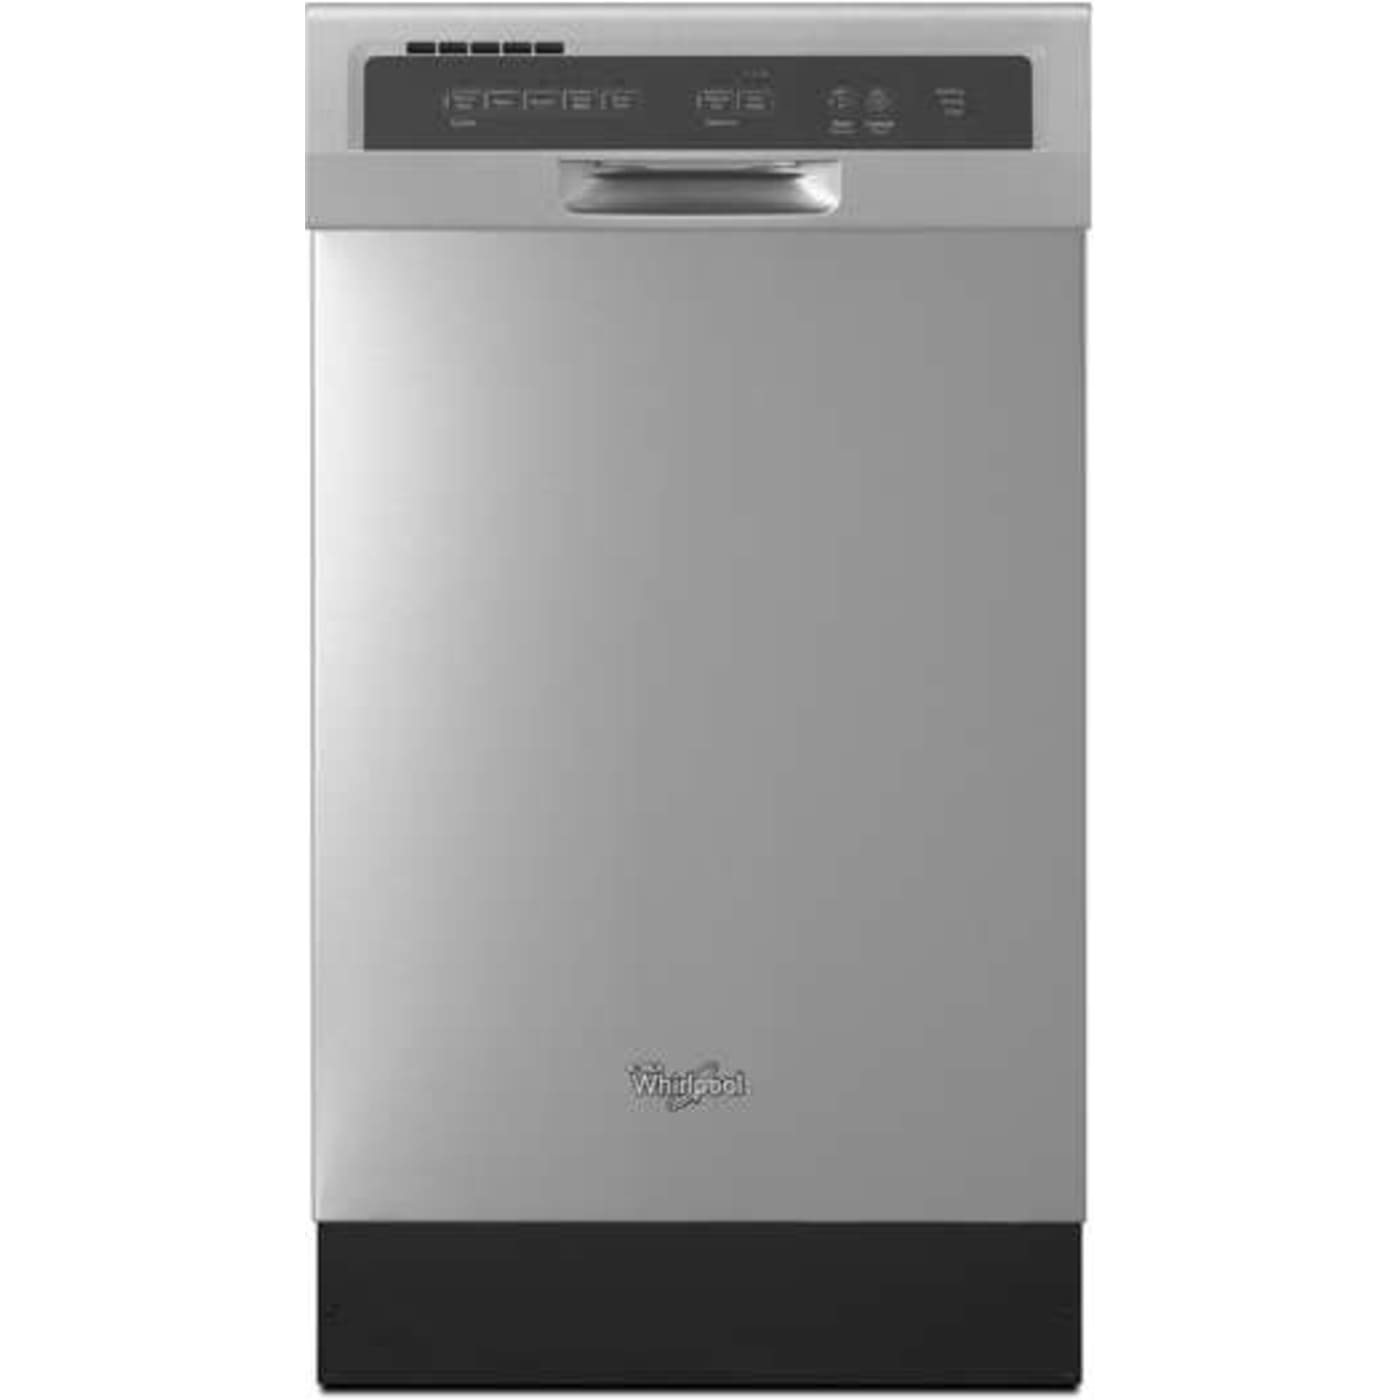 Whirlpool Wdf518saaw Whirlpool 18 In 57 Decibel Built In: Full Console Dishwashers